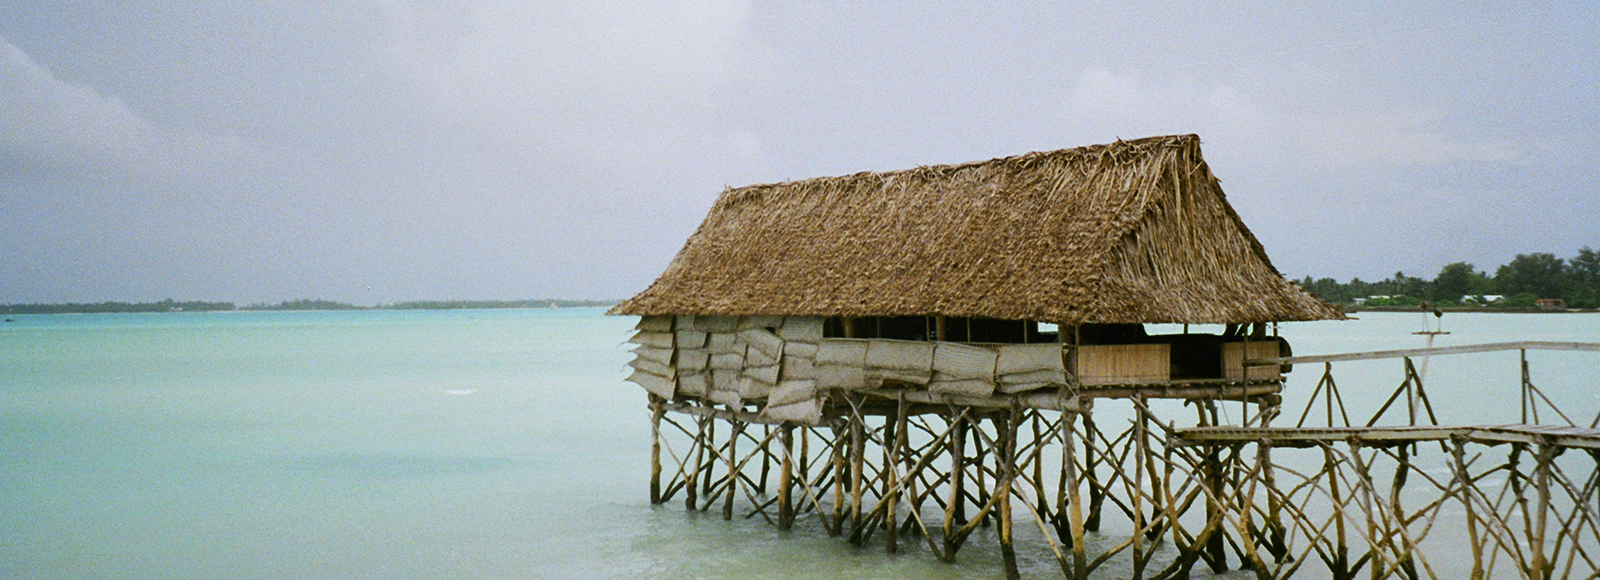 Image taken by Bachelor of Design / Media student Martina Calvi on the UNSW Island Innovation Lab trip